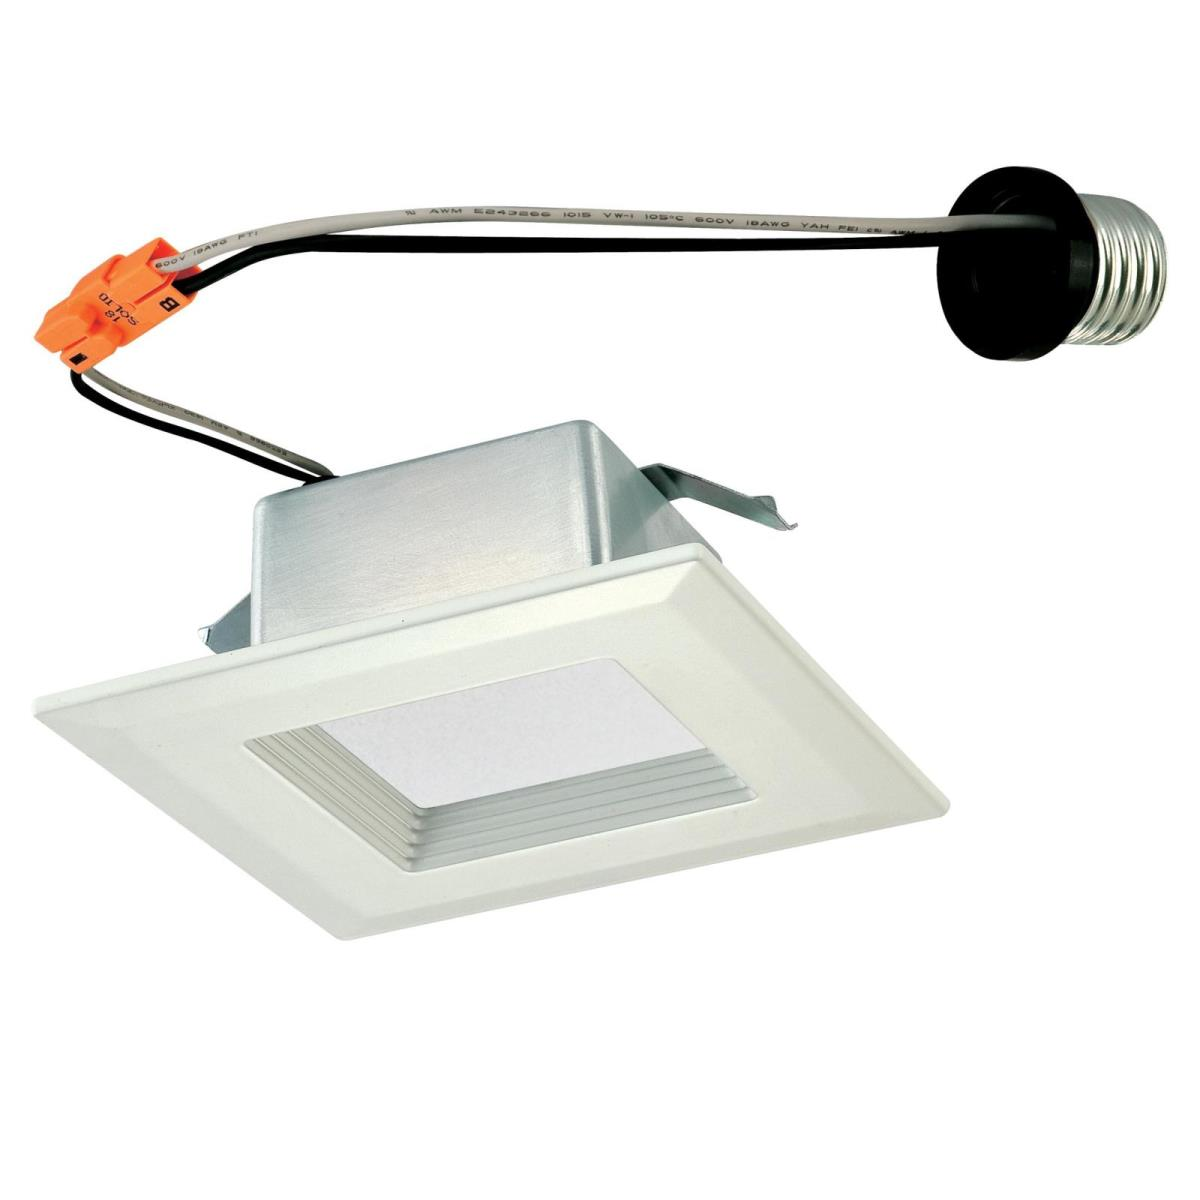 "10W Square Recessed LED Downlight 4"" Dimmable 4000K E26 (Medium) Base, 120 Volt, Box"